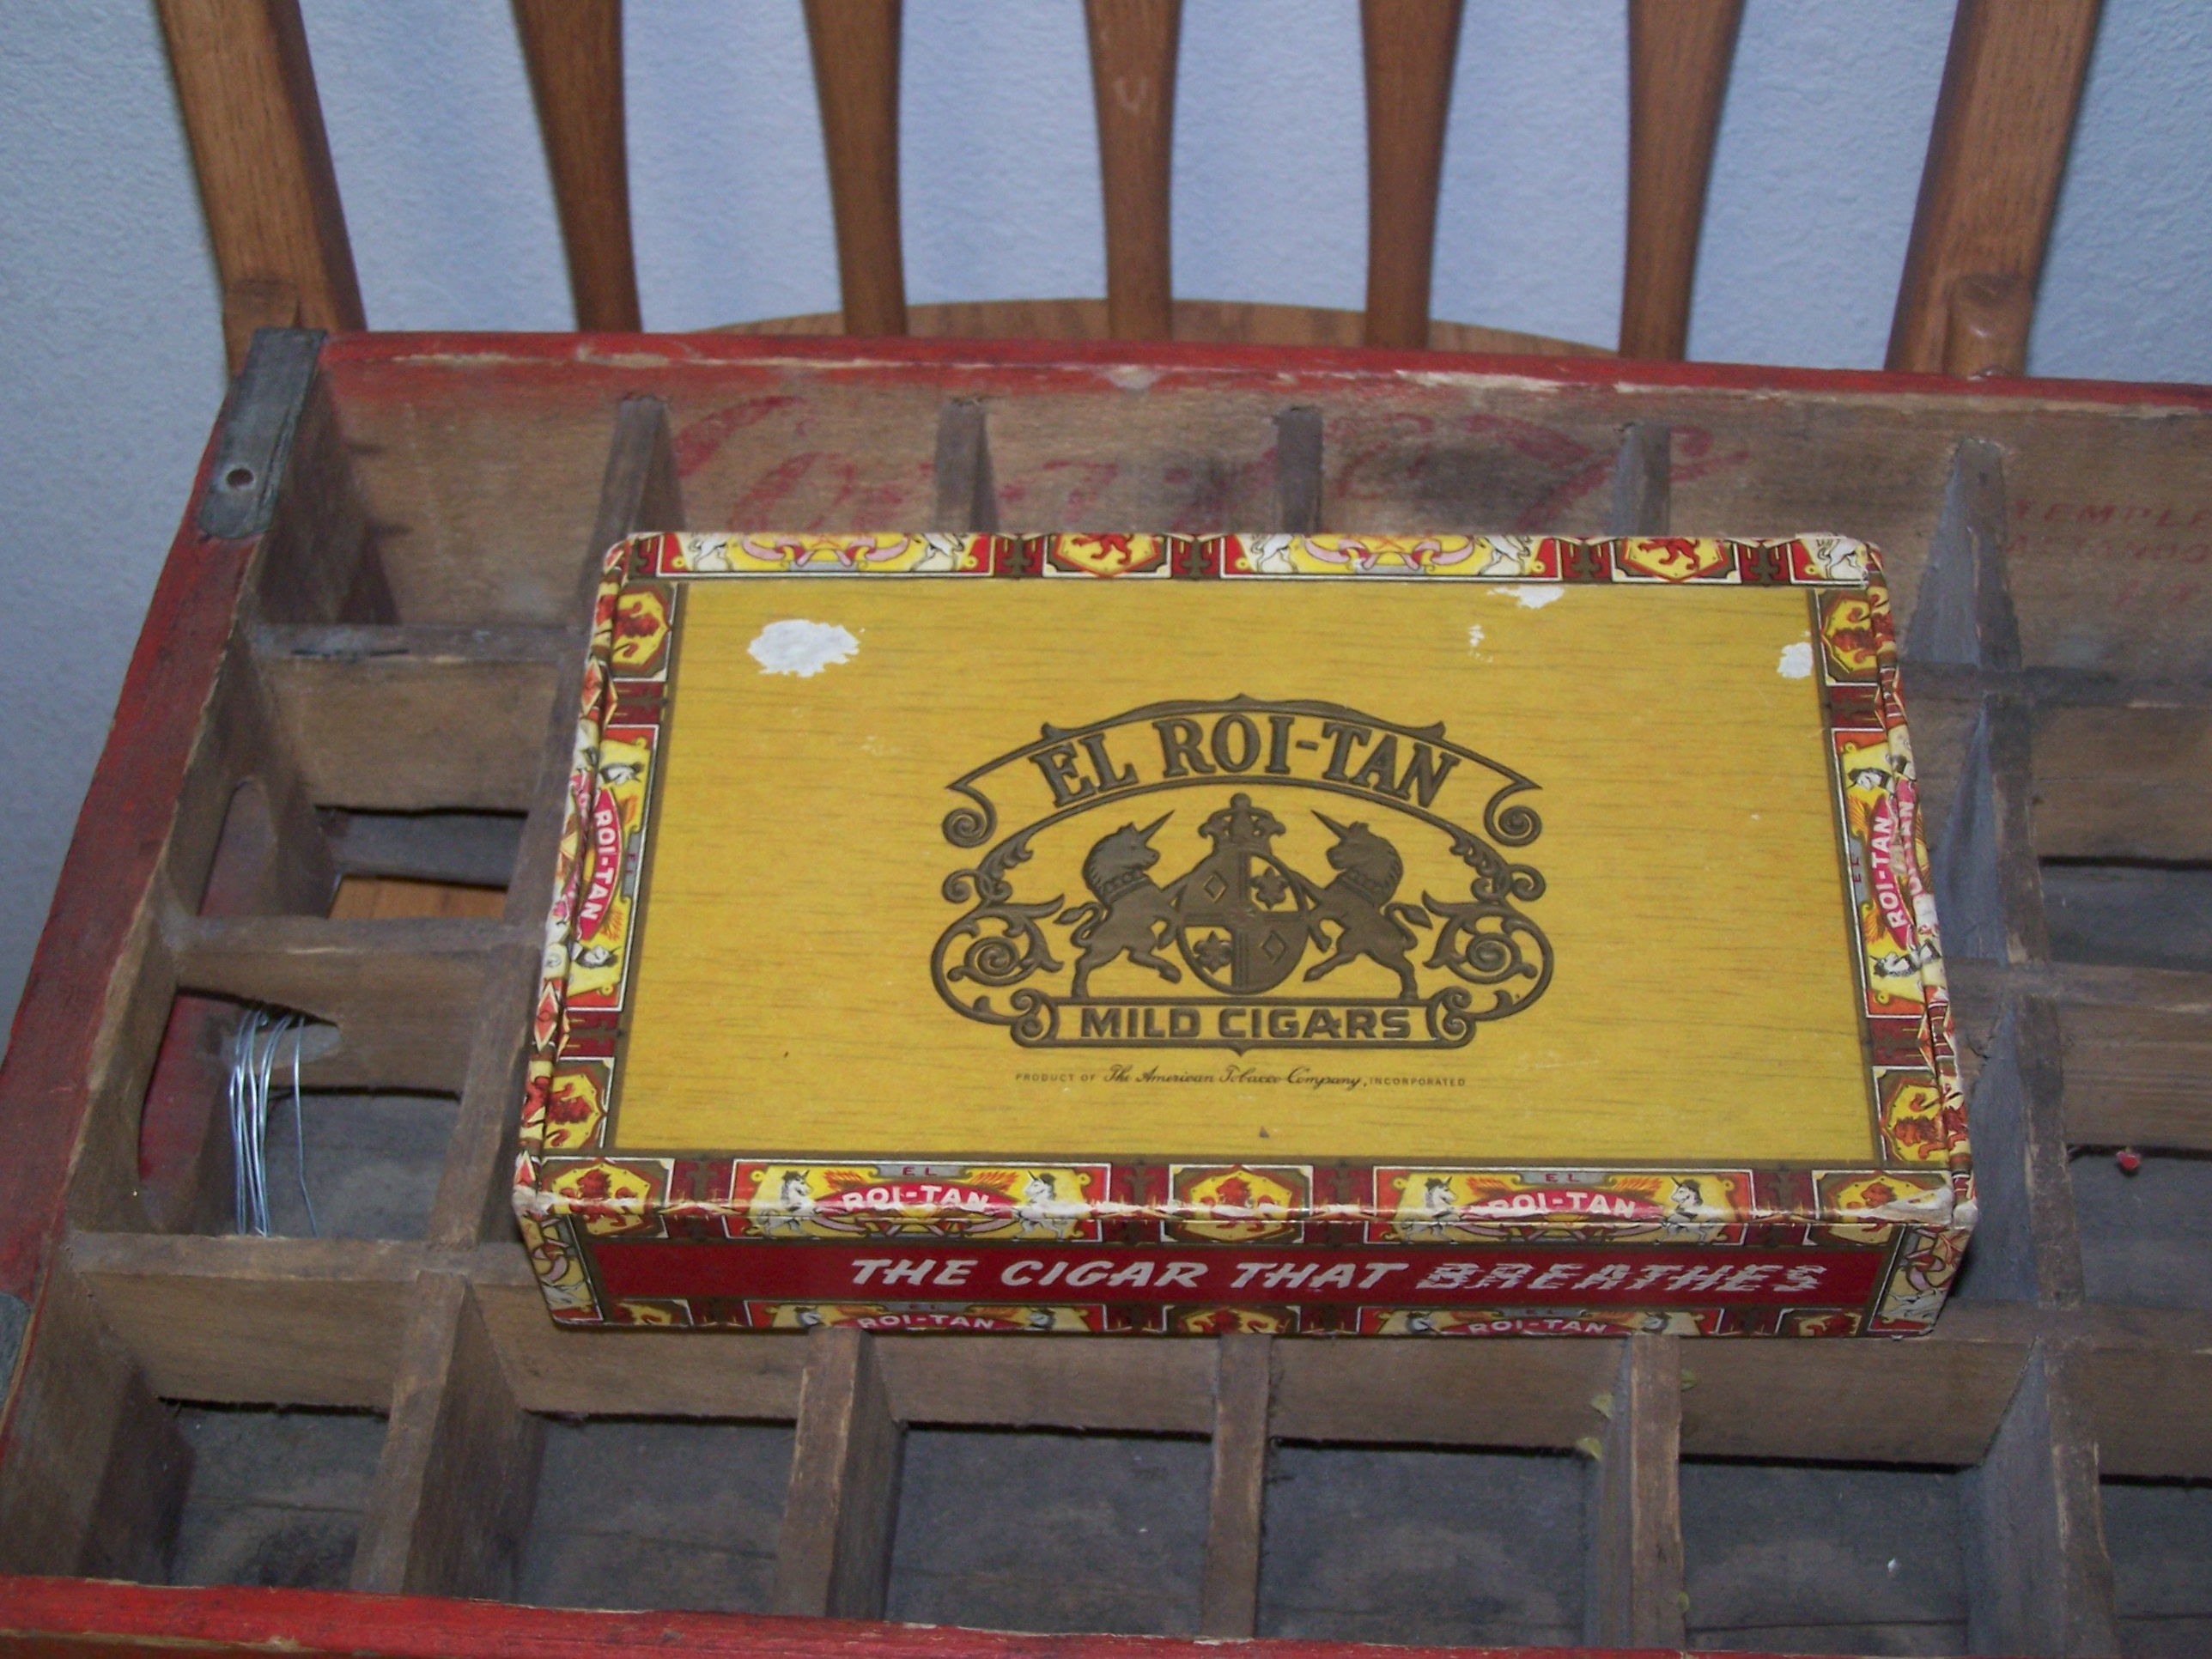 This is a very old cigar box.  I though this would be beautiful to hold little odds and ends.